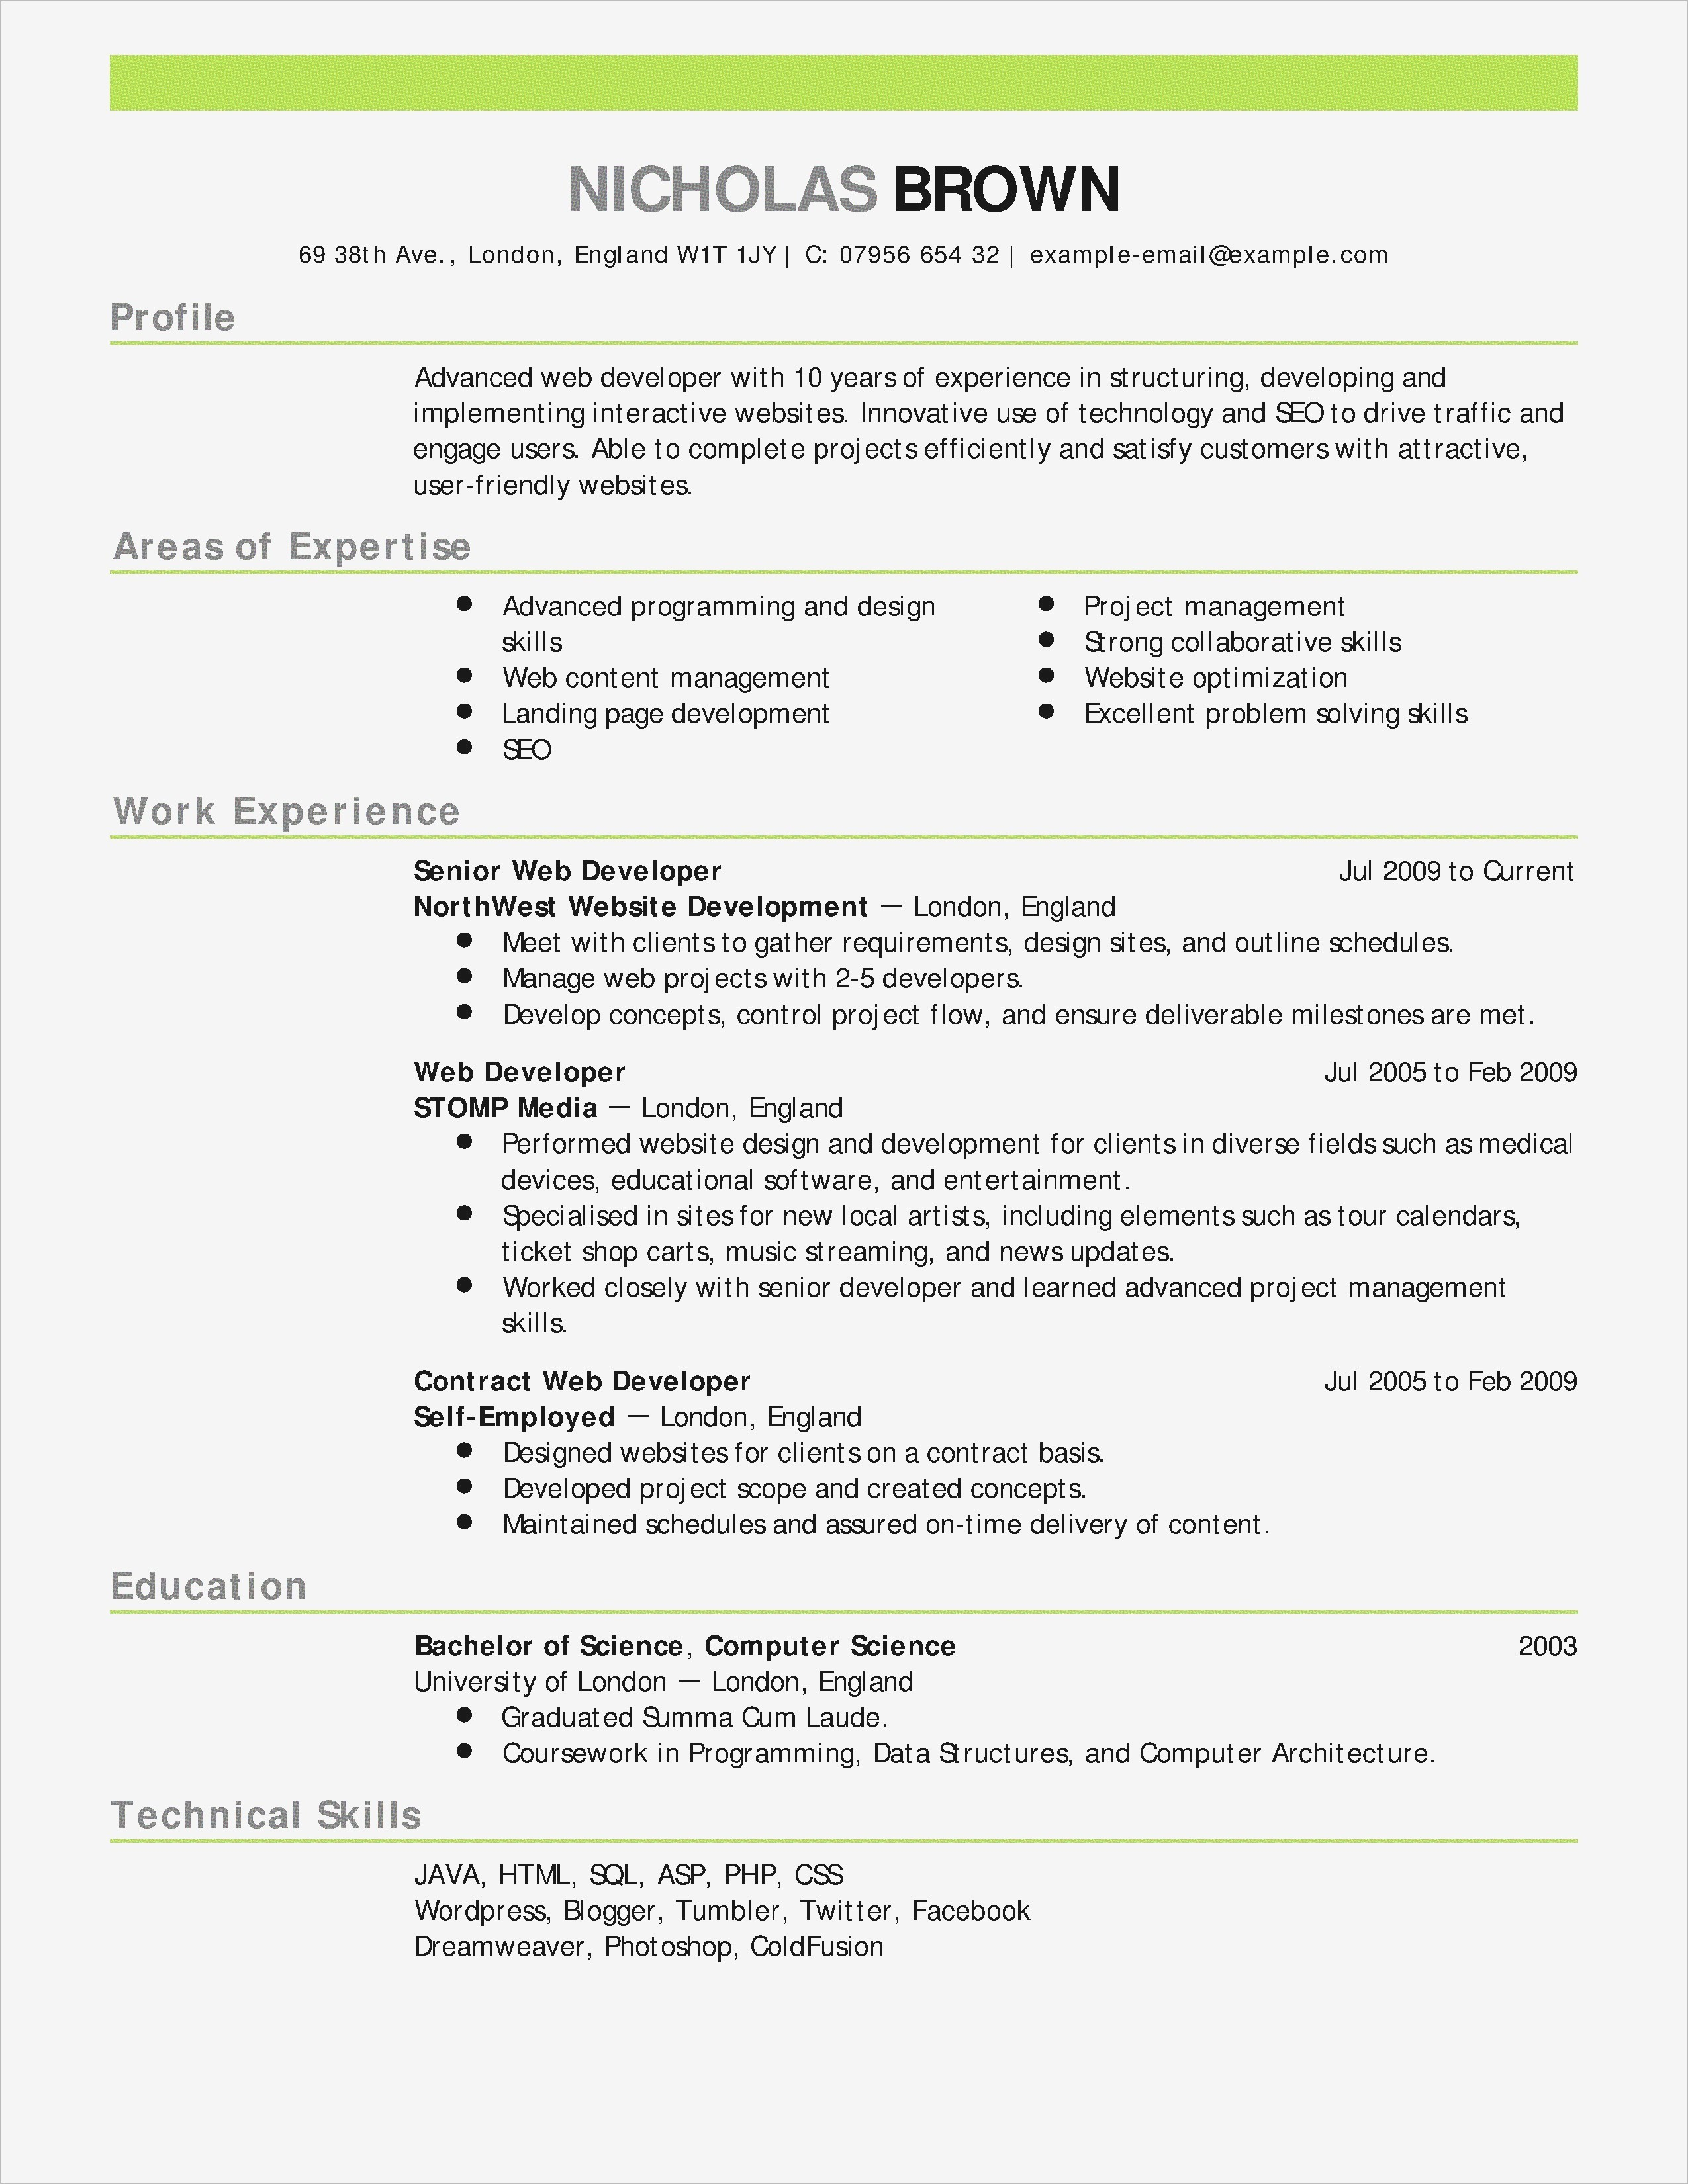 Resume Writing Services - Cover Page for Resume New Elegant Cover Letter Writing Service